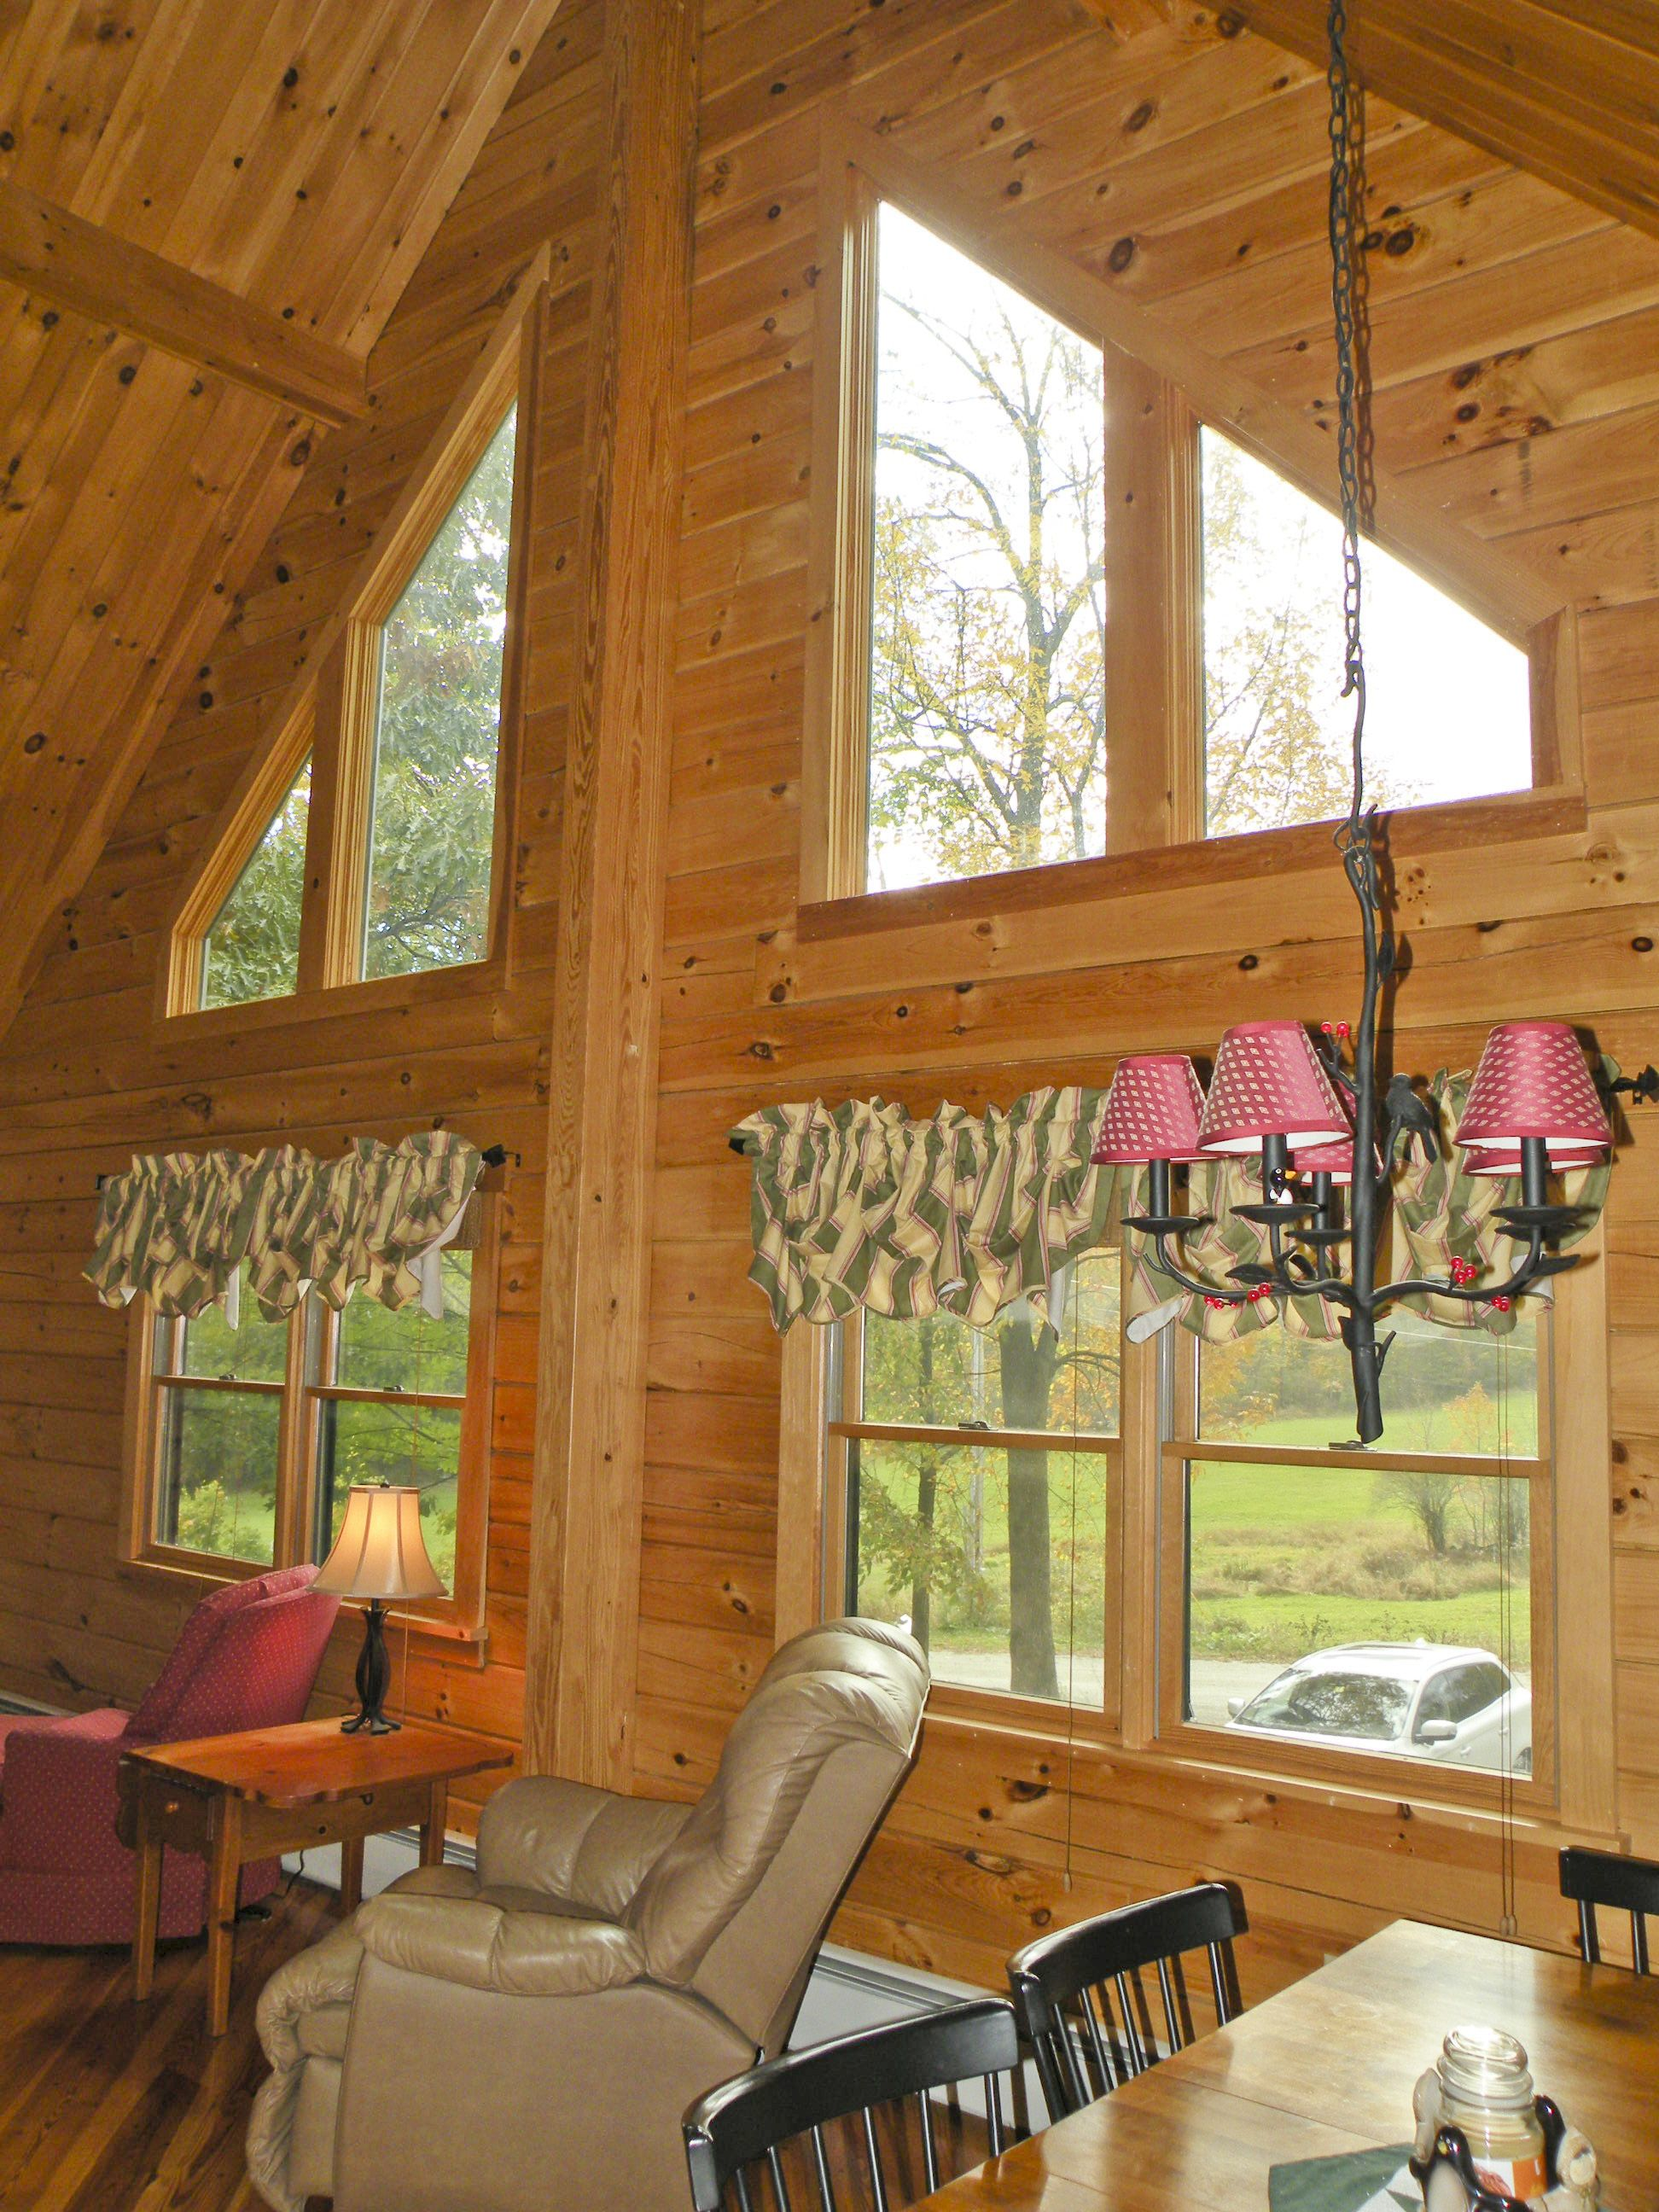 Vaulted ceiling and expansive windows for maximum natural - Vaulted ceiling designs for homes ...